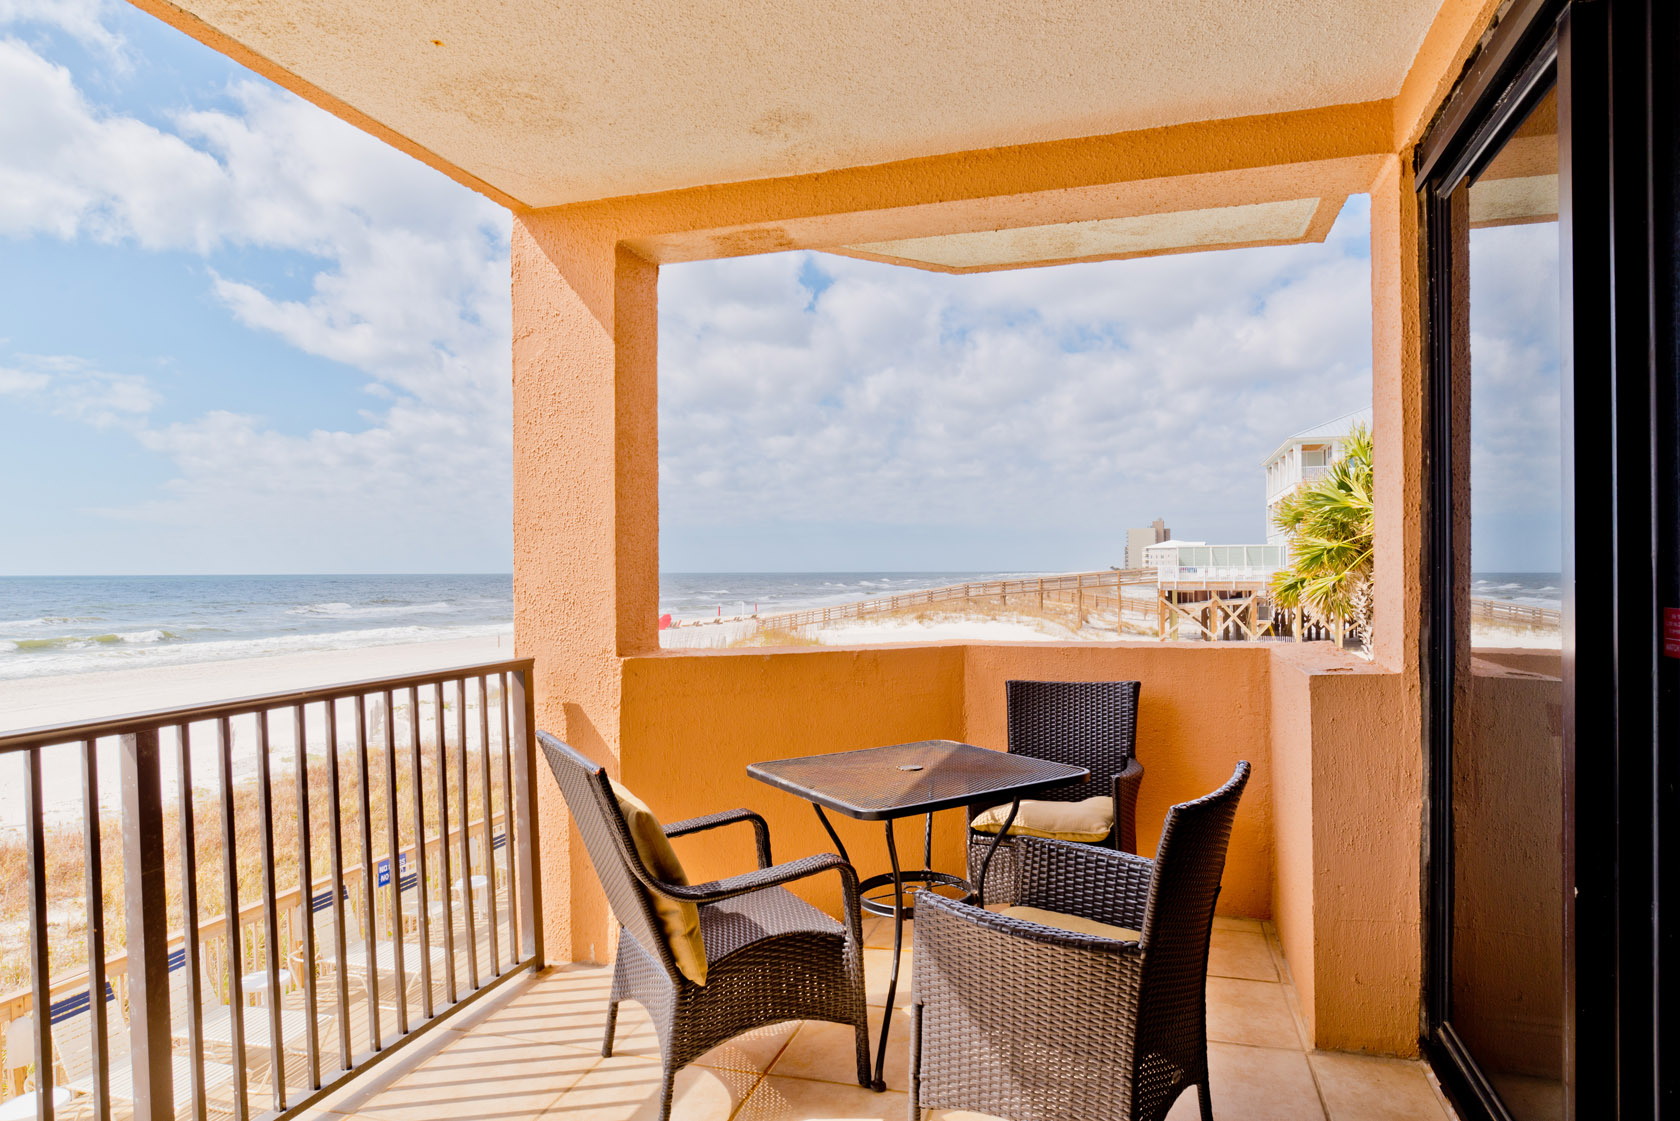 Premium Beach Front Condo, Stunning 2nd Floor Views, Pool and Fitness Center